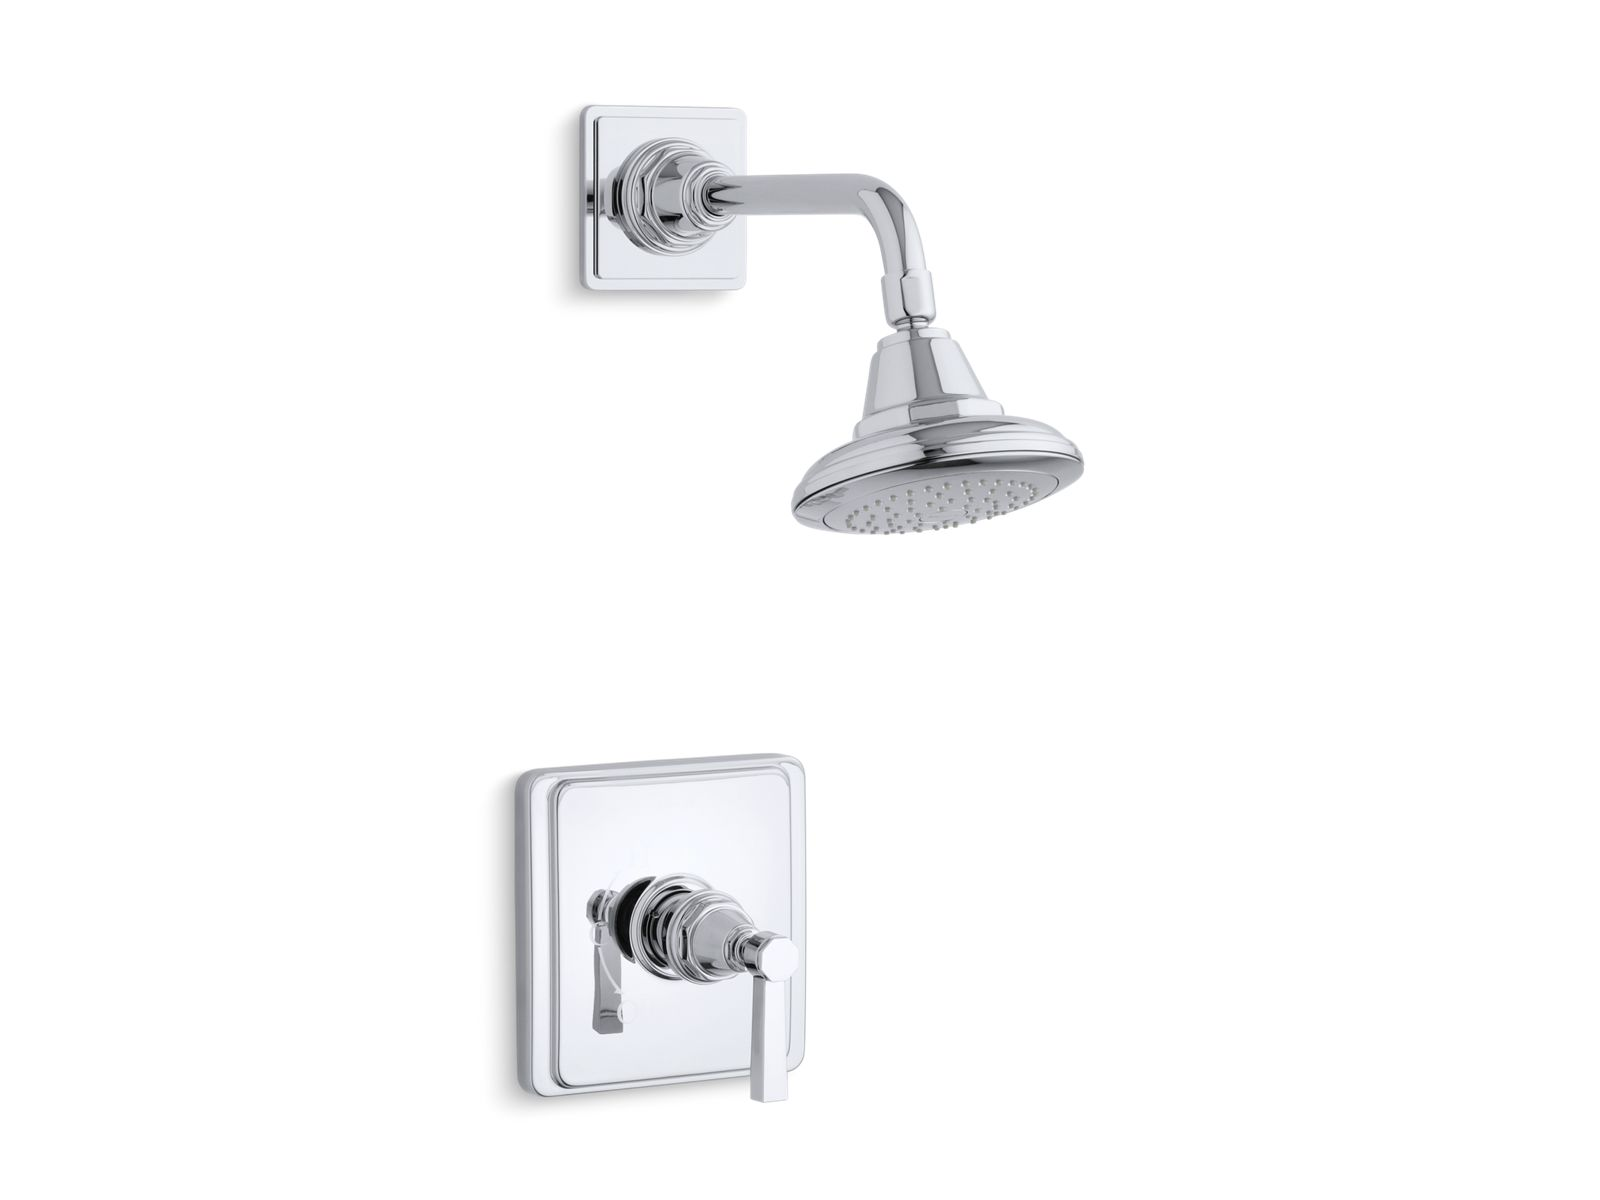 k ts13134 4a pinstripe pure rite temp shower valve trim with lever handle and 2 5 gpm showerhead kohler